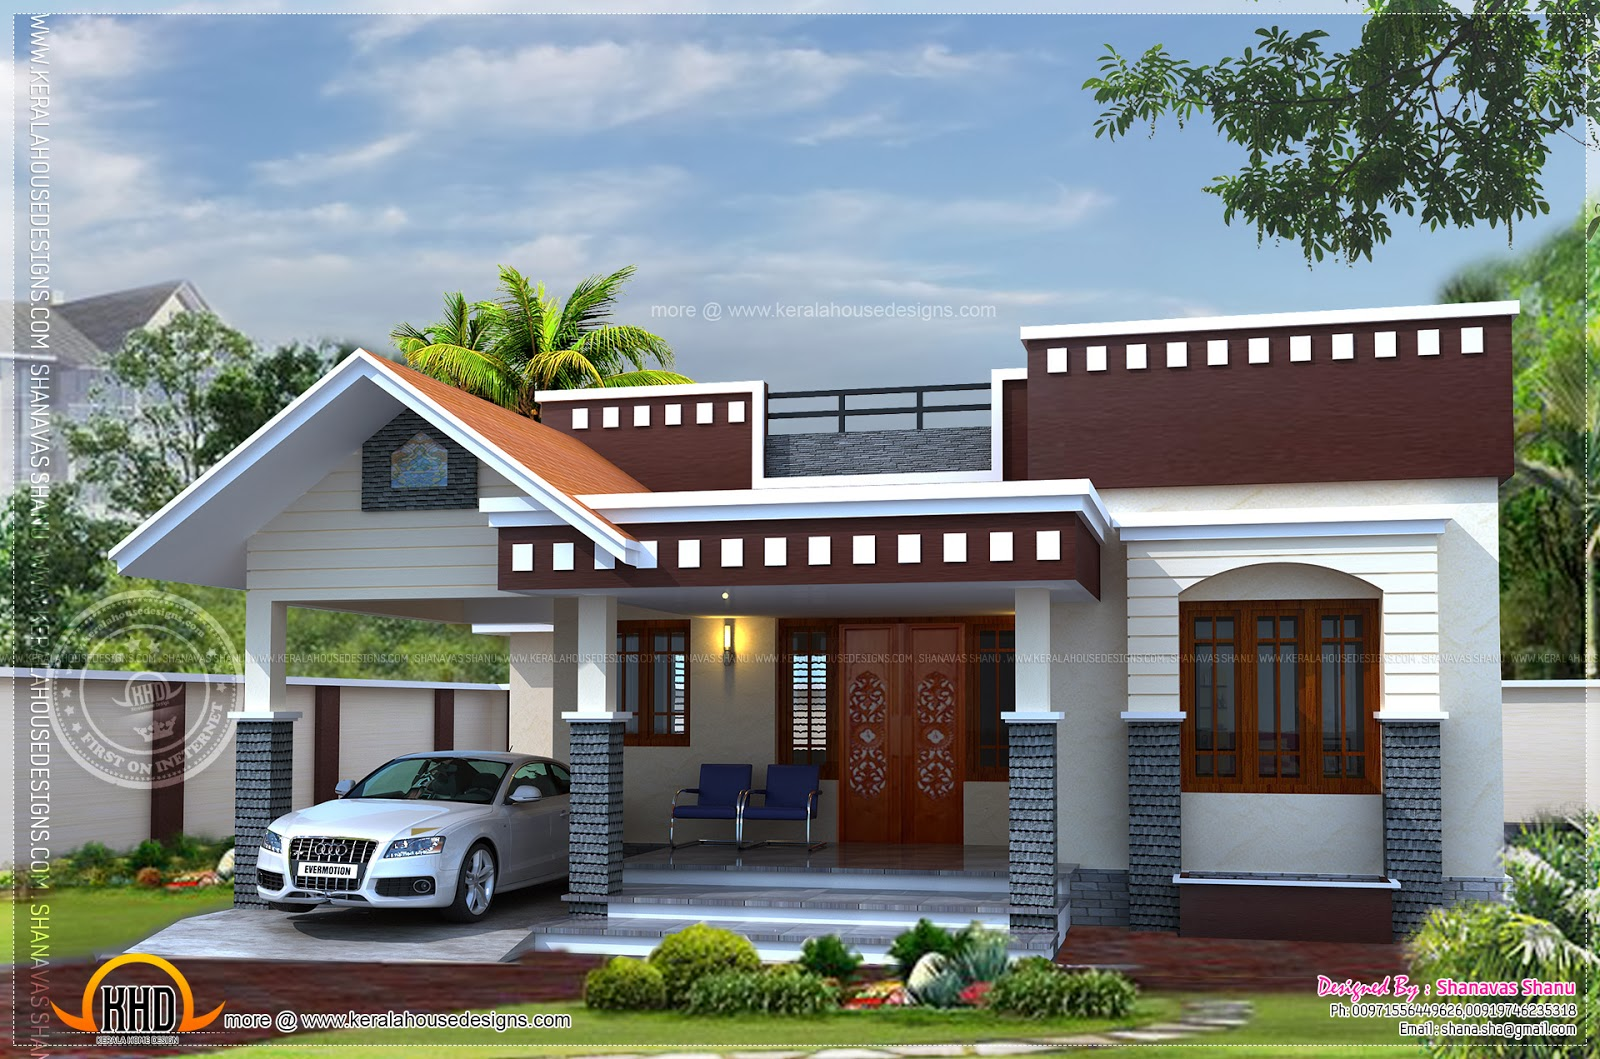 House Design One Floor Home Plan Of Small House - Kerala Home Design And Floor Plans